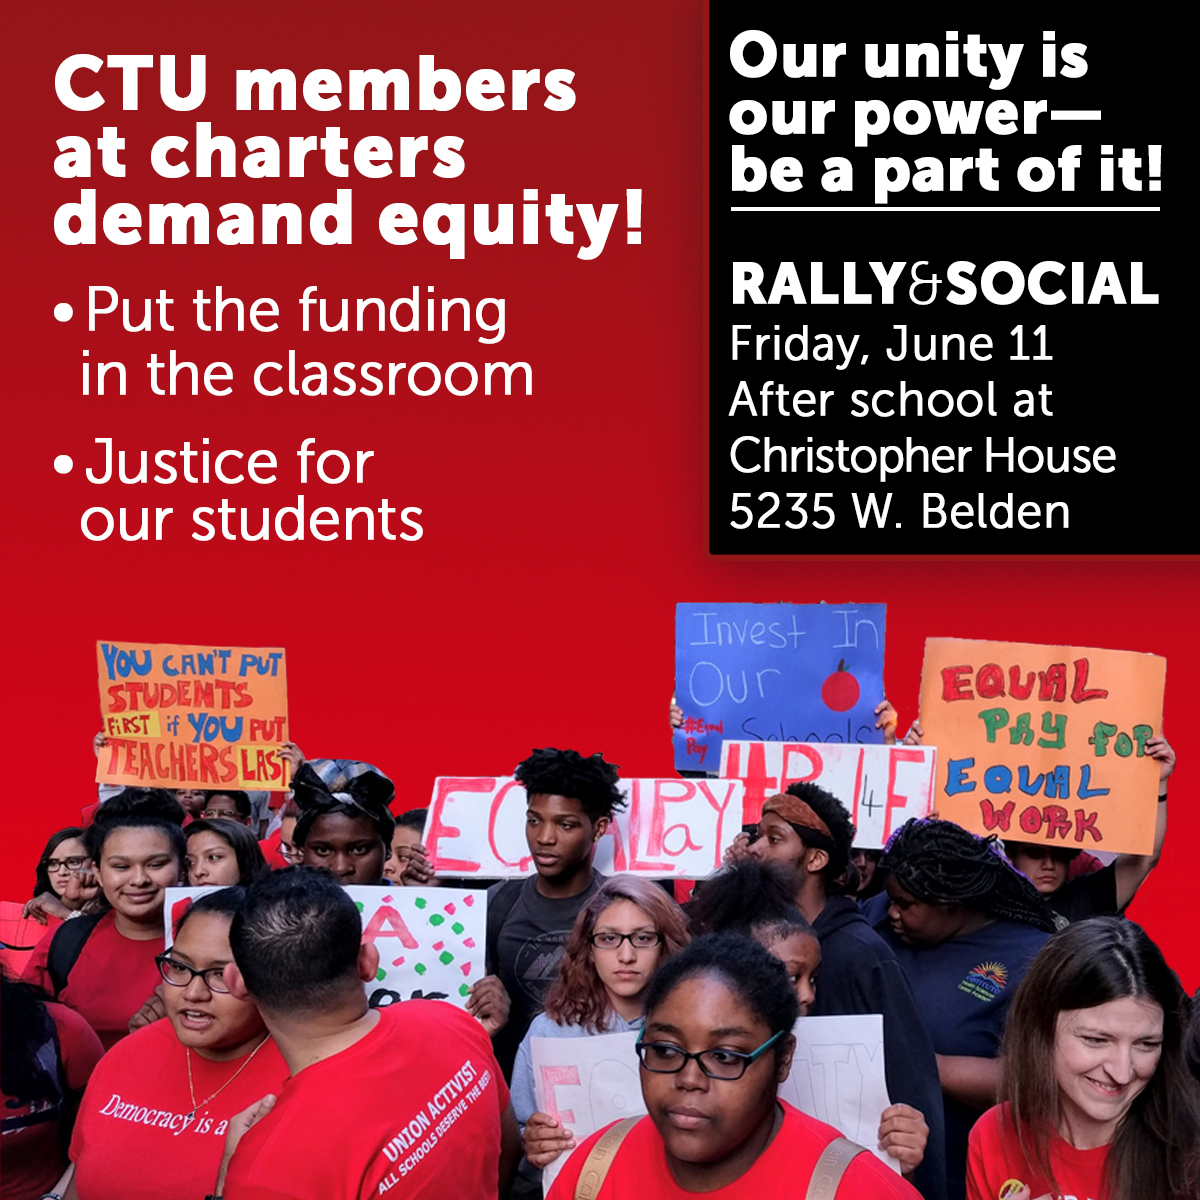 CTU members at charters demand equity. Rally and social Friday, June 11 after school at Christopher House, 5235 W Belden.